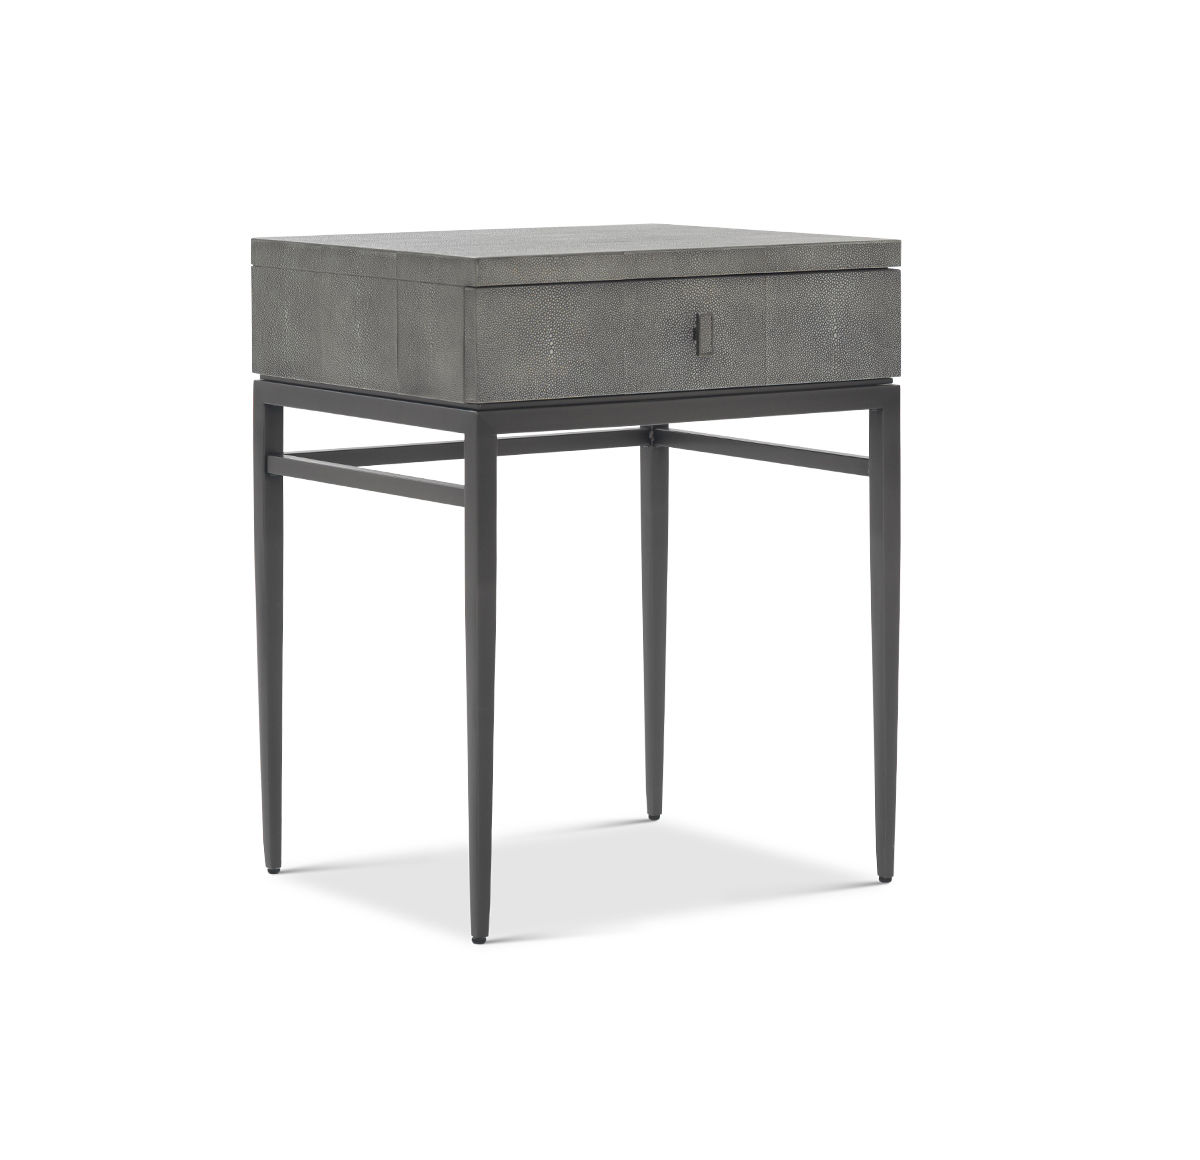 metal end table swe stb solange gray hero knurl nesting accent tables set two side res contemporary nest ashley furniture trundle patio covers corner ikea pottery barn folding